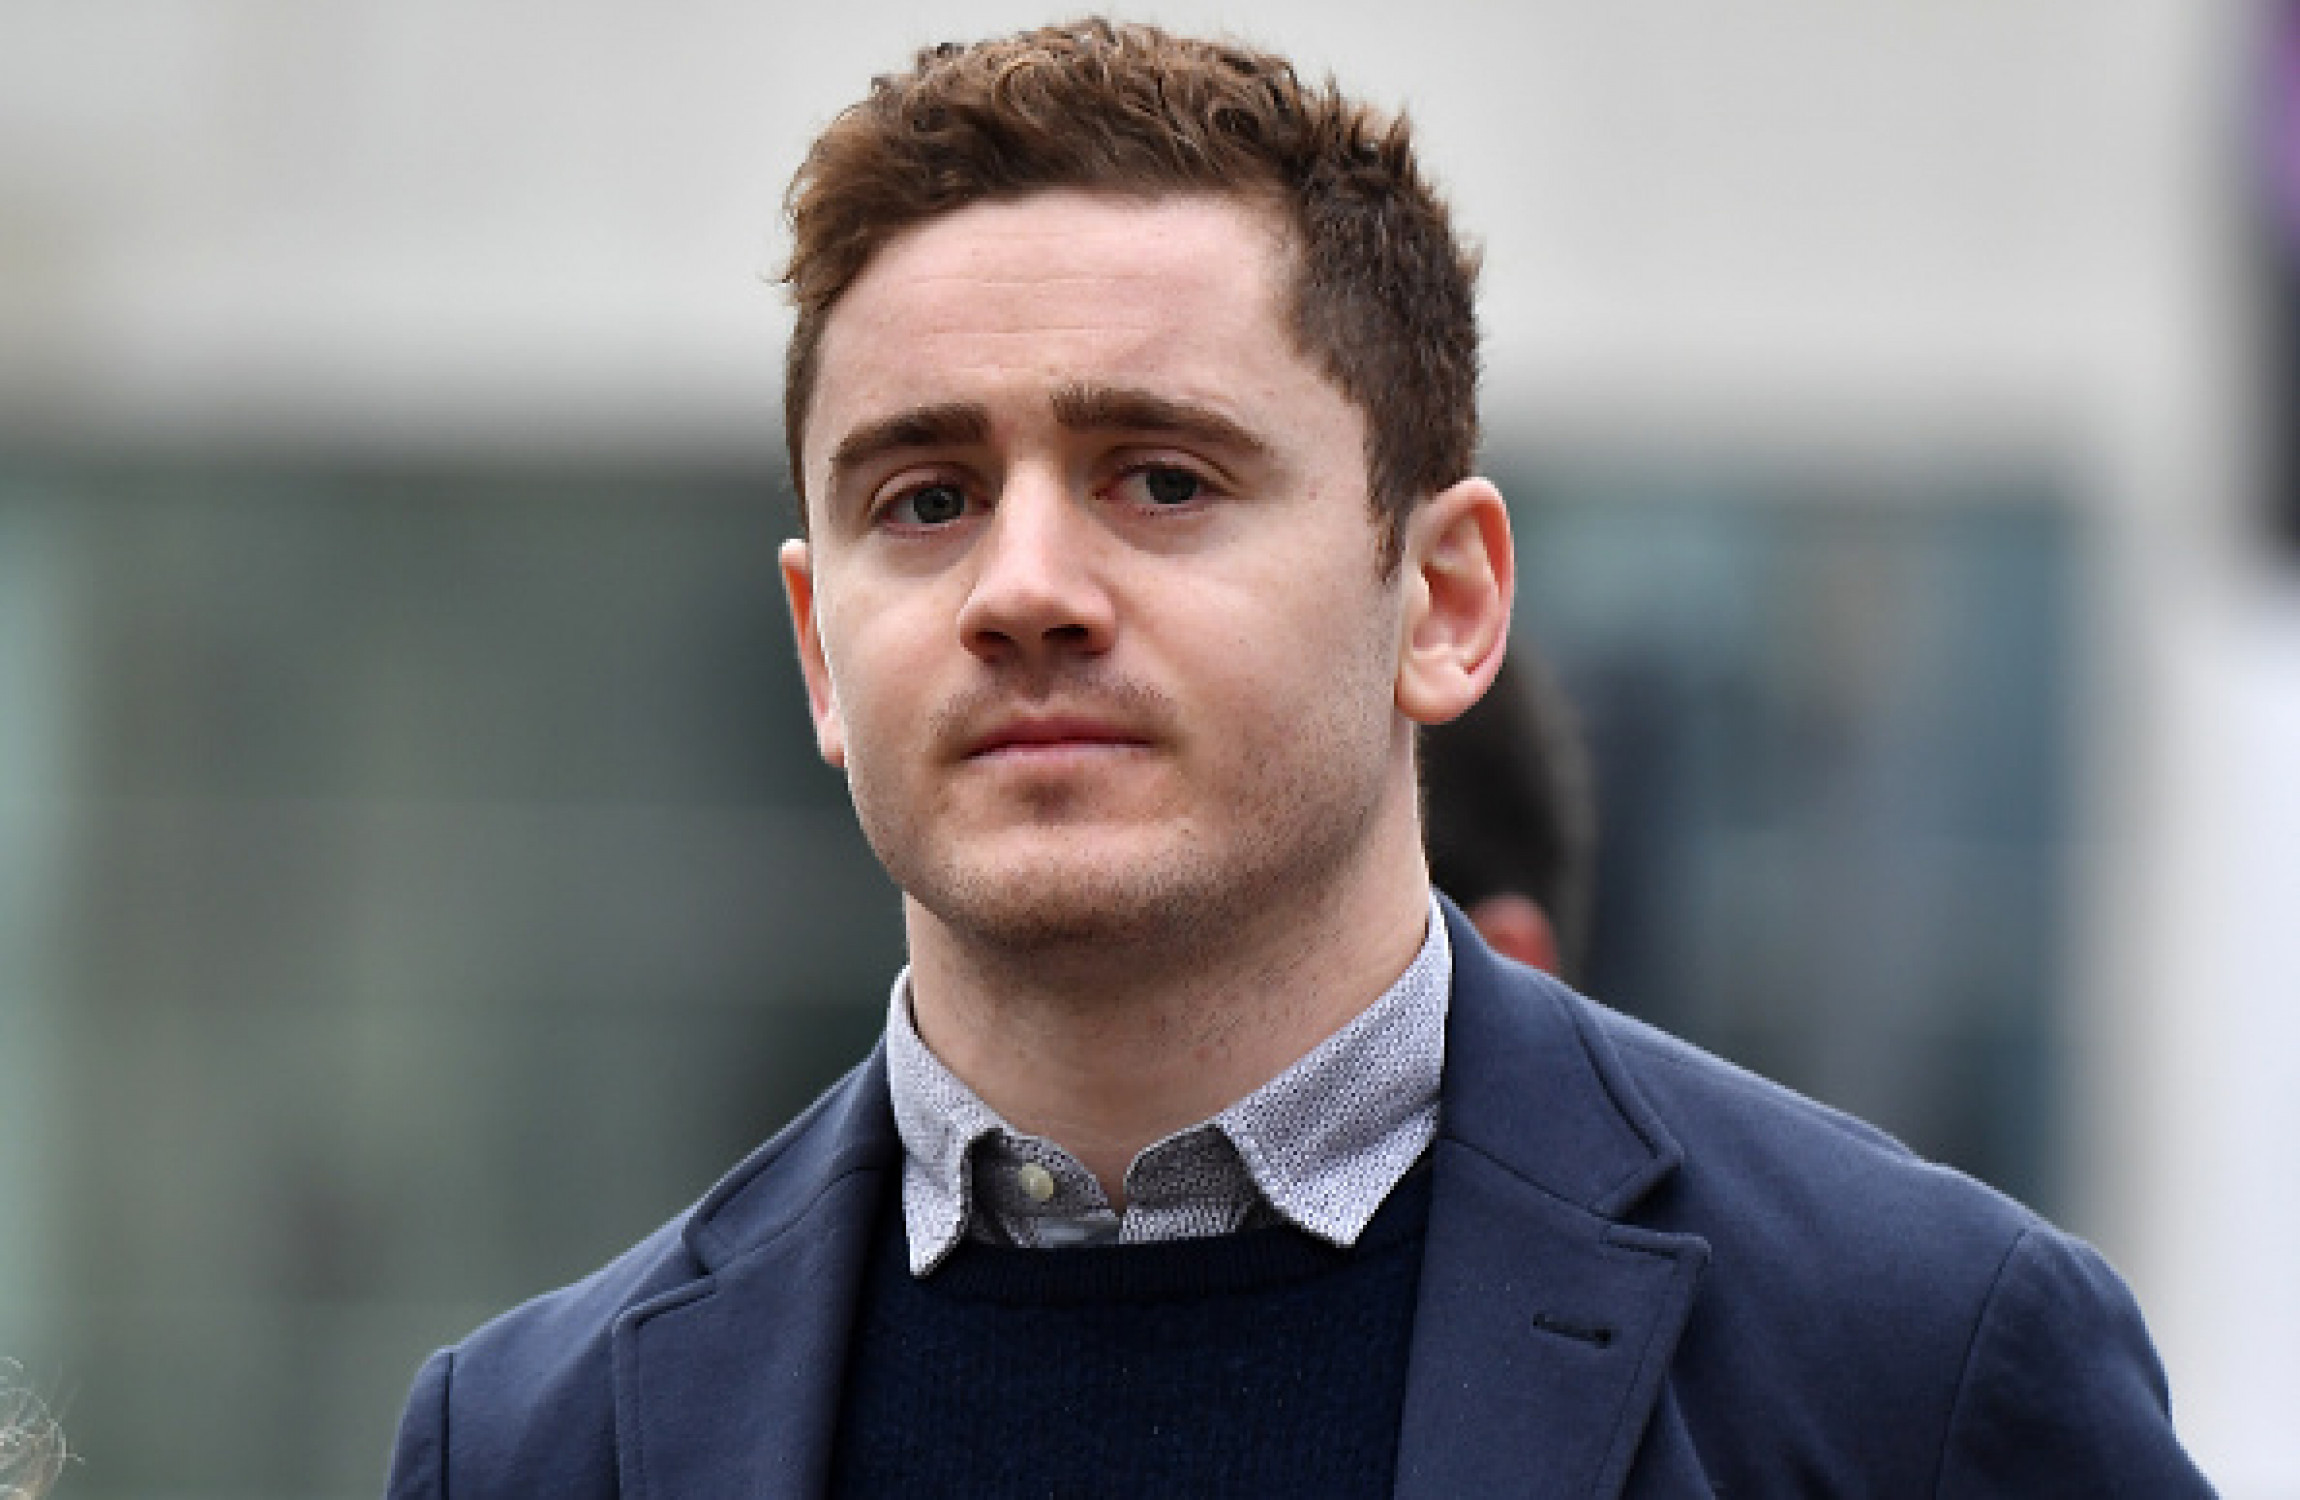 Rugby rape trial jury sent out to decide verdicts